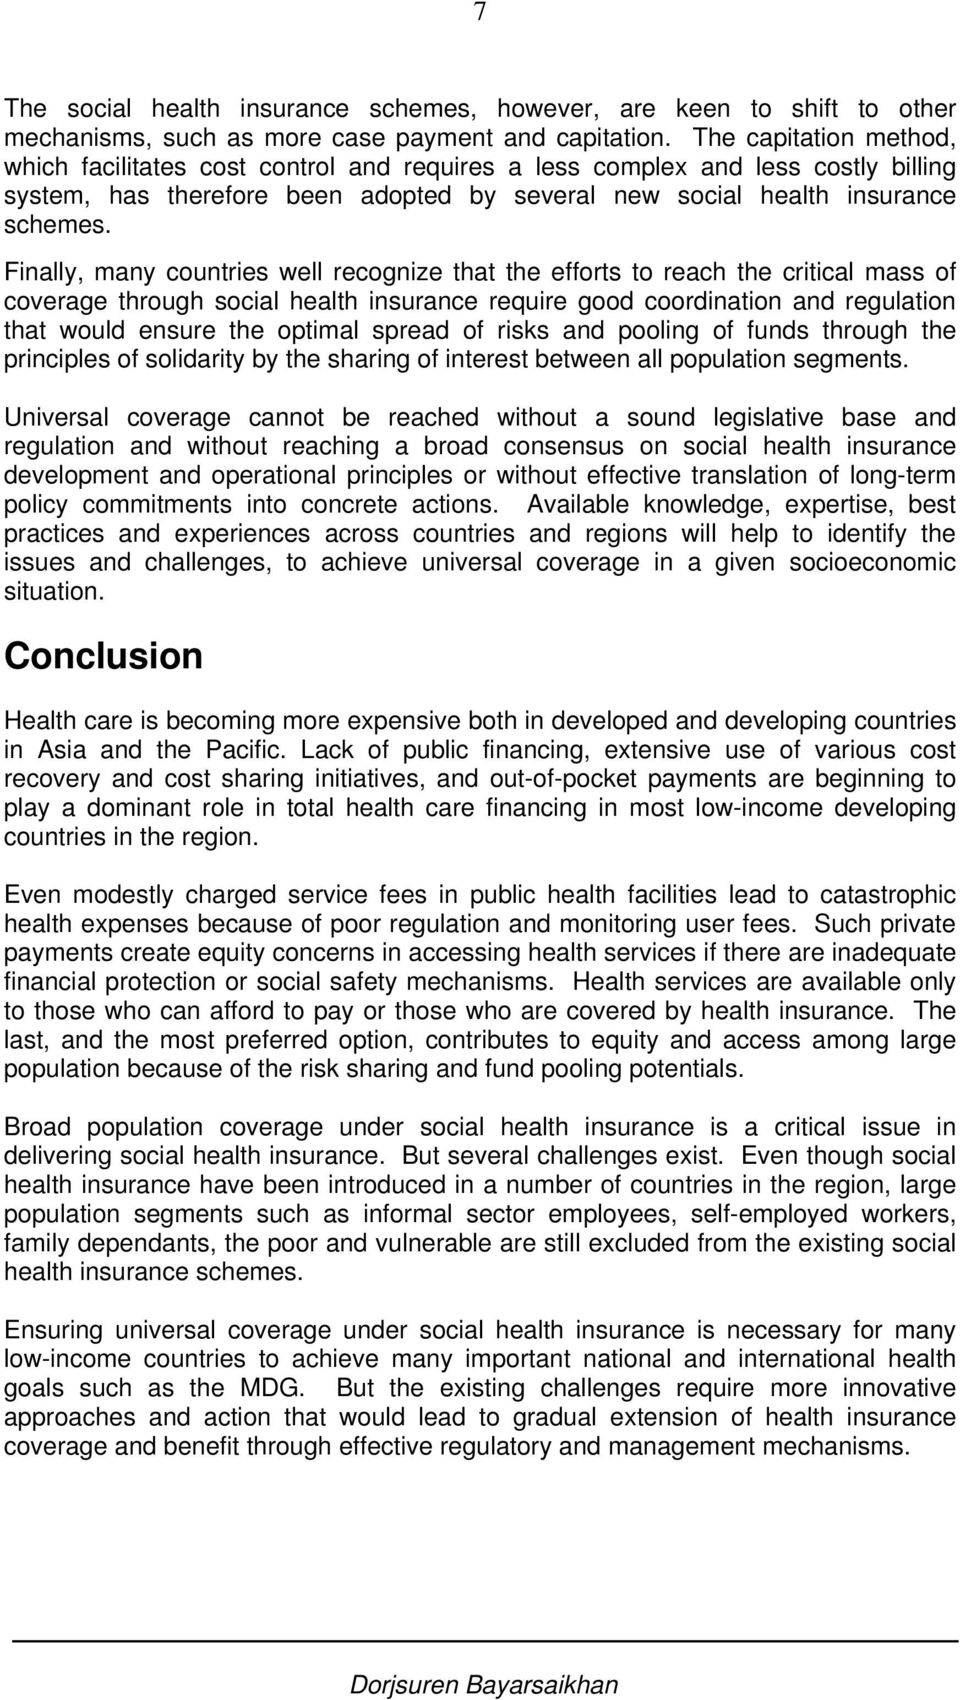 Finally, many countries well recognize that the efforts to reach the critical mass of coverage through social health insurance require good coordination and regulation that would ensure the optimal